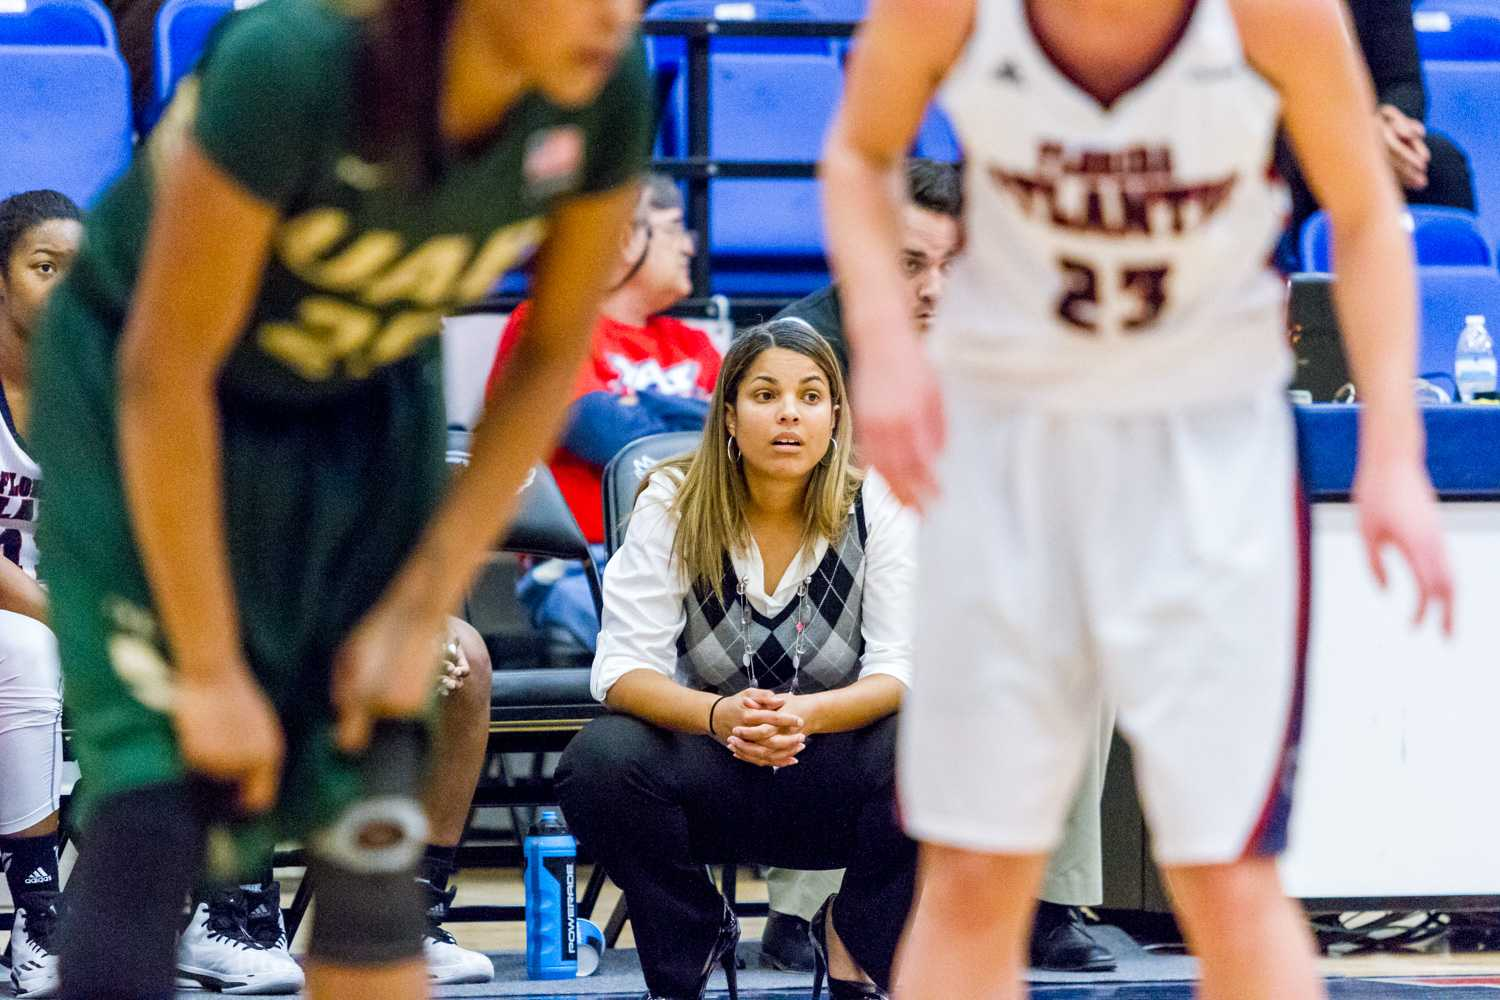 Head coach Kellie Lewis-Jay looks on. Her team is now 8-5 on the season and 2-0 in Conference USA.